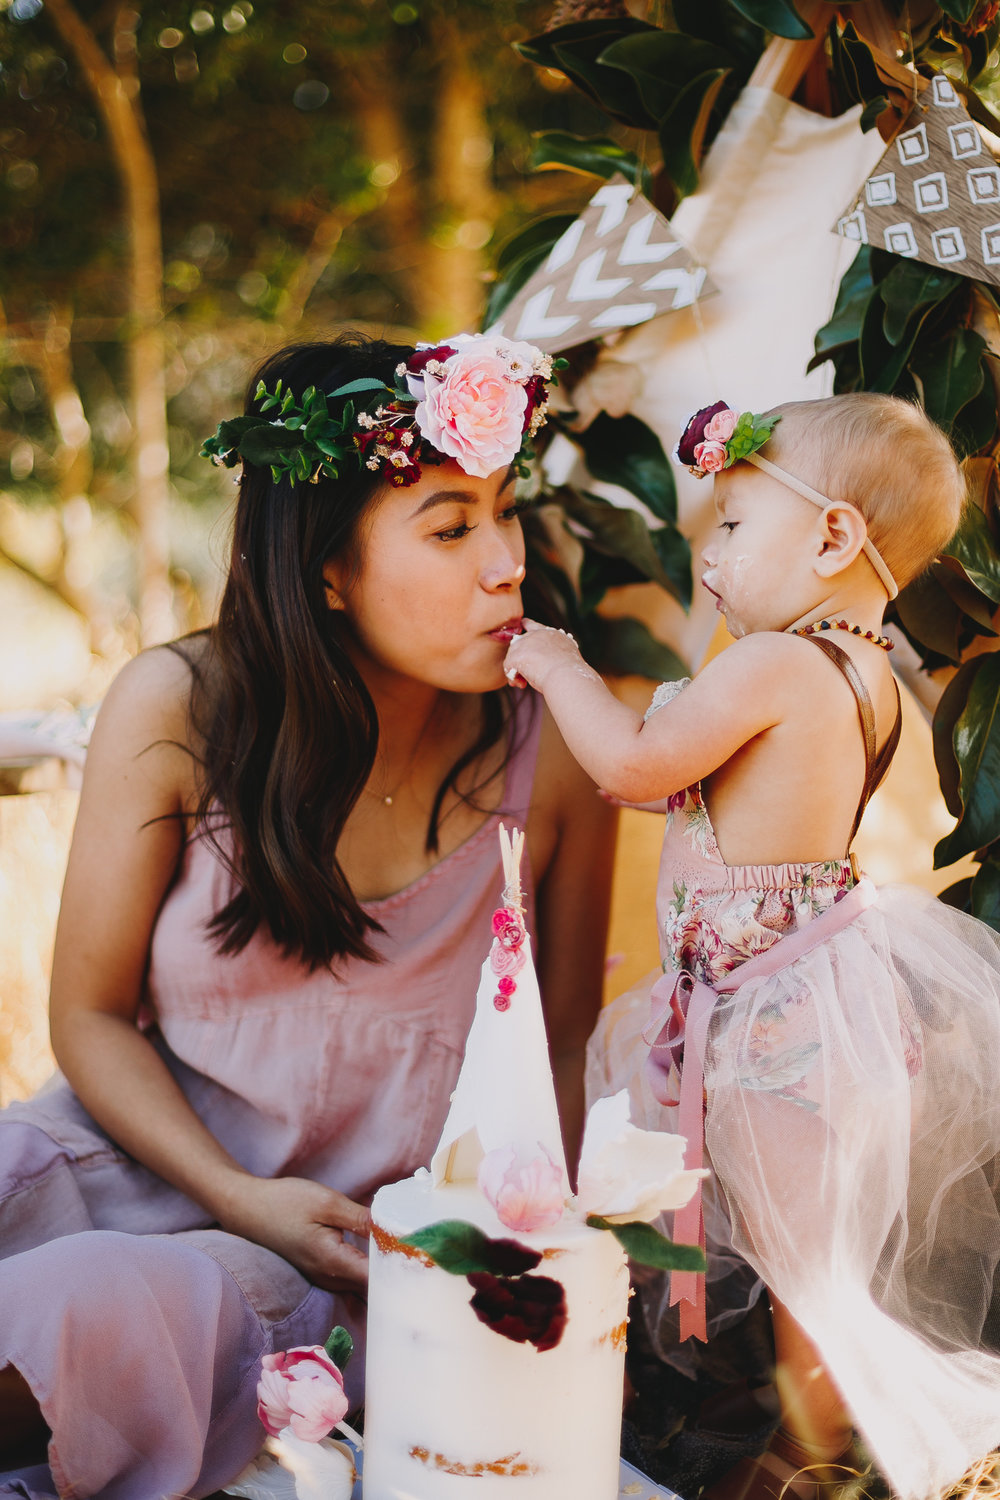 Archer_Inspired_Photography_Olivia_Daisy_Boho_Stylized_One_Year_Old_Cake_Smash_Shoot_Morgan_Hill_California-154.jpg